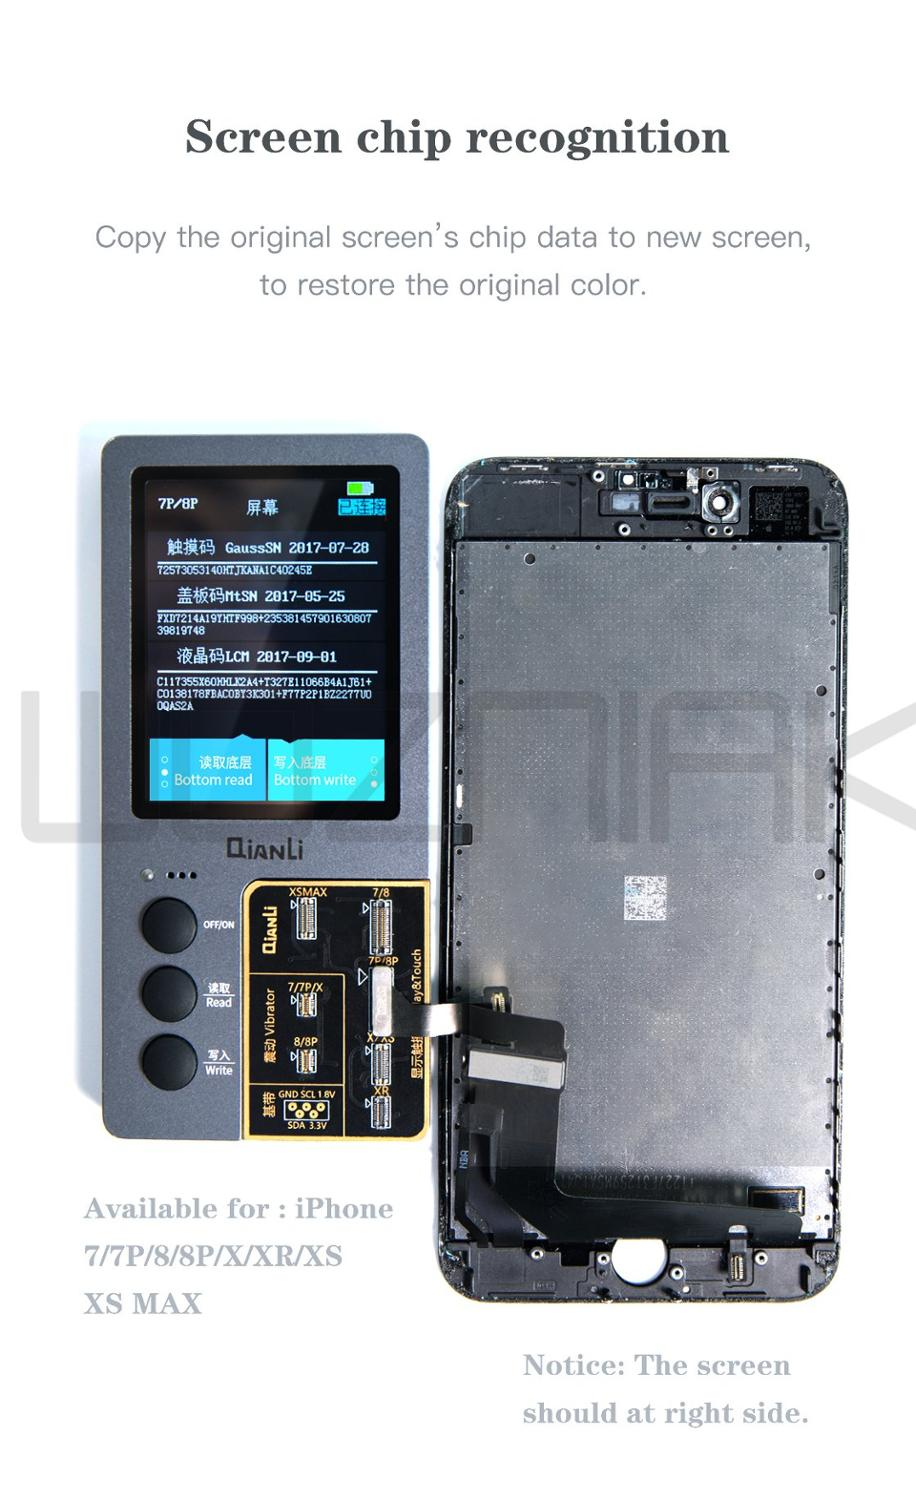 QianLi iCopy LCD Display Touch Vibrating Motor eeProm Transfer Tool For iPhone parts icluding LCD Touch Vibrating Motor a